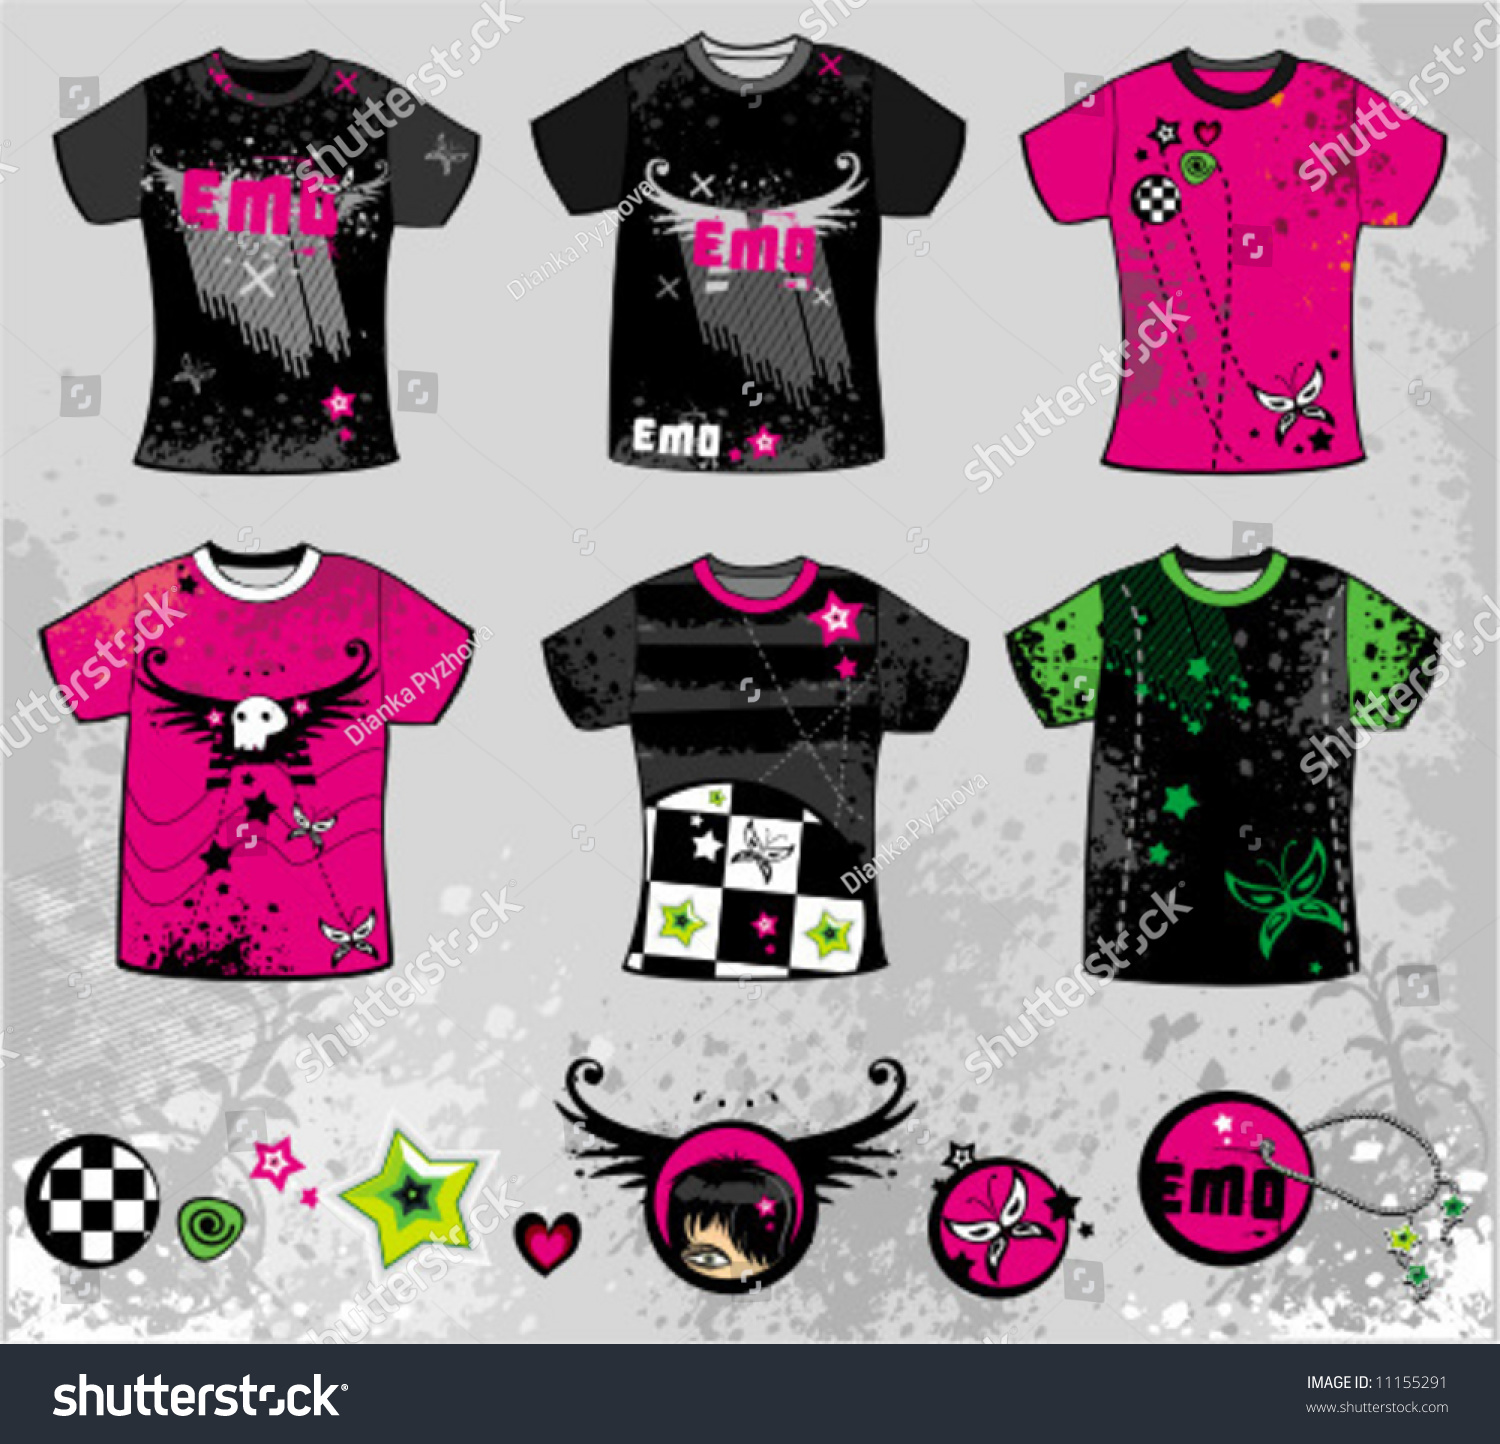 Shirt design elements - Emo T Shirts To See Similar Design Elements Please Visit My Gallery